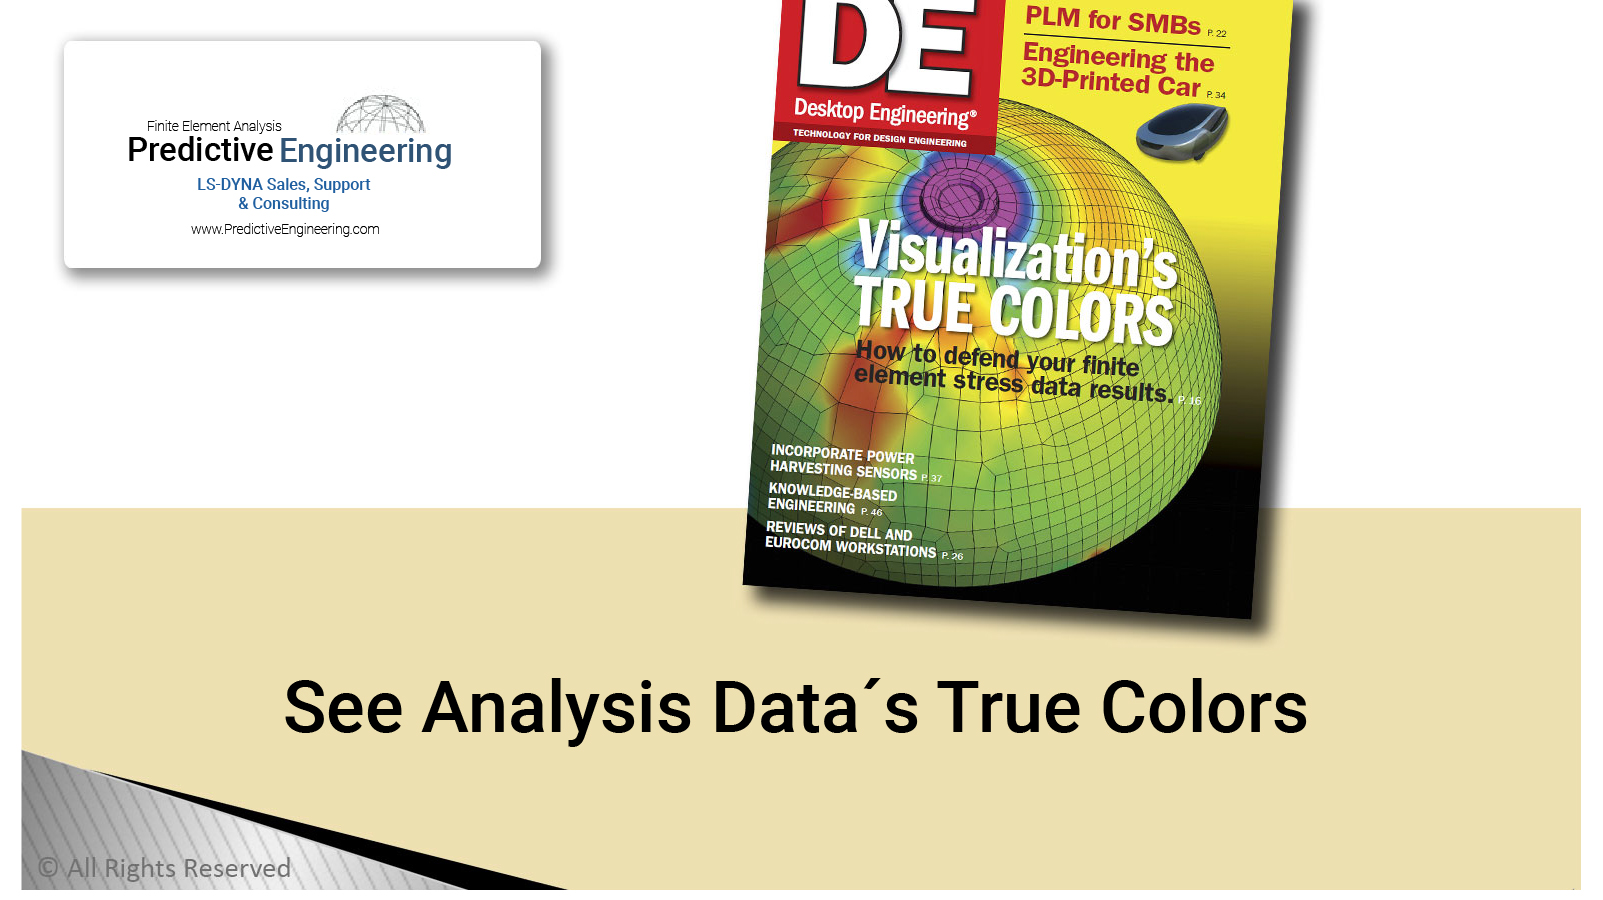 See Analysis Data's True Colors Image